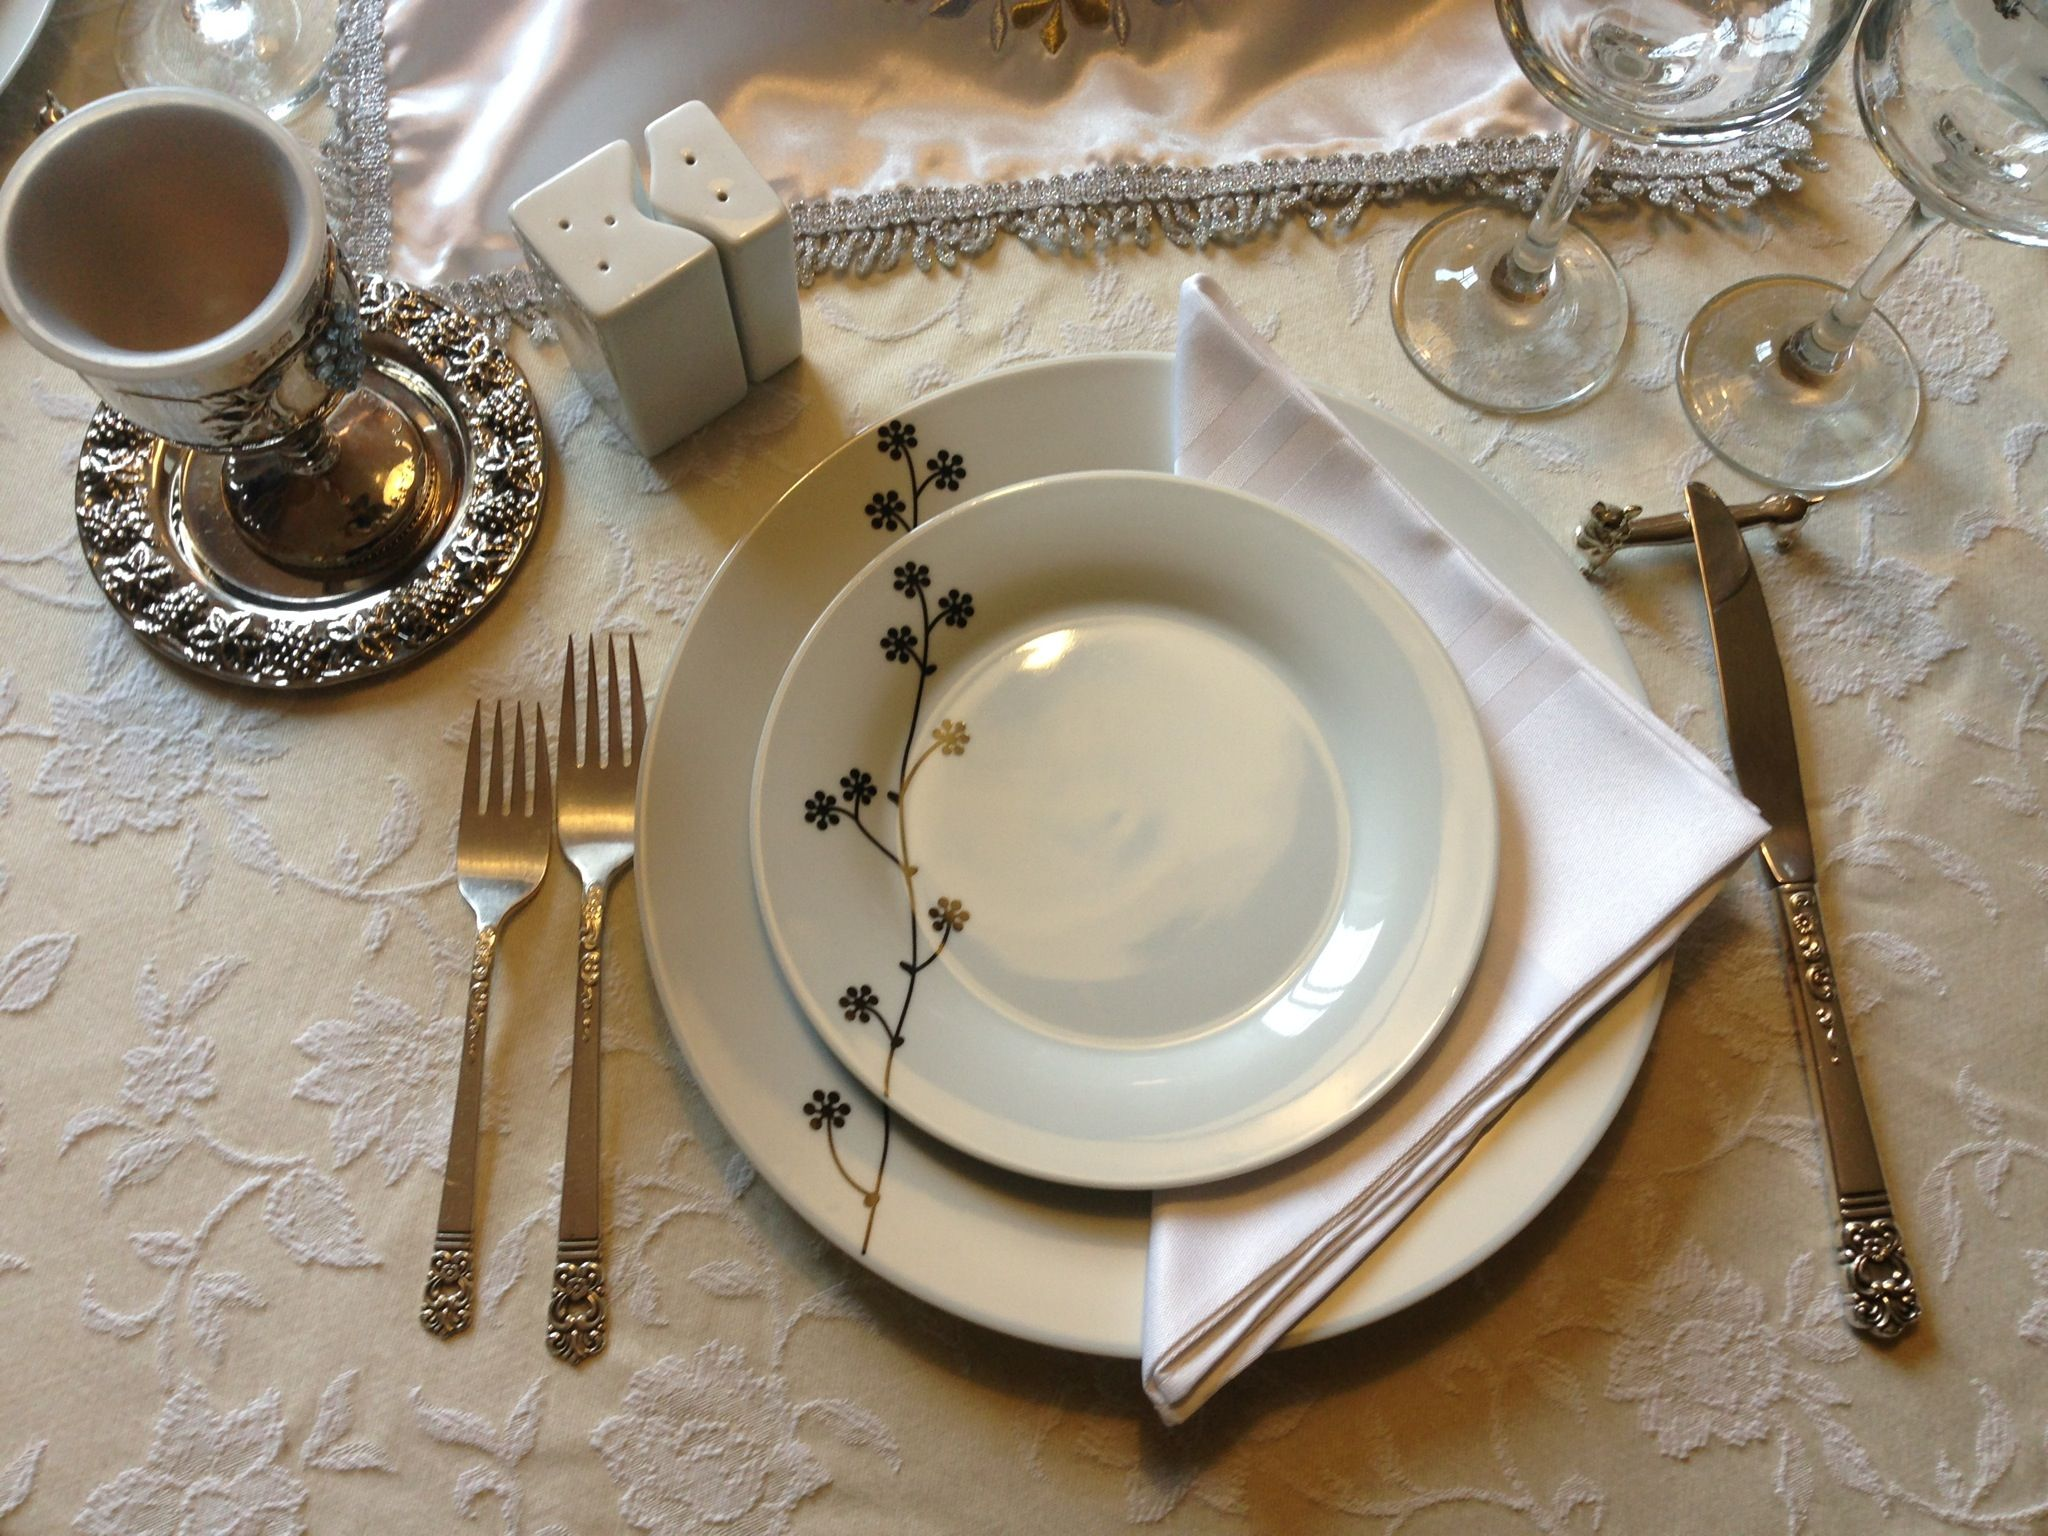 Elegant dinner table setting - Simple And Elegant Table Setting For Shabbat Dinner